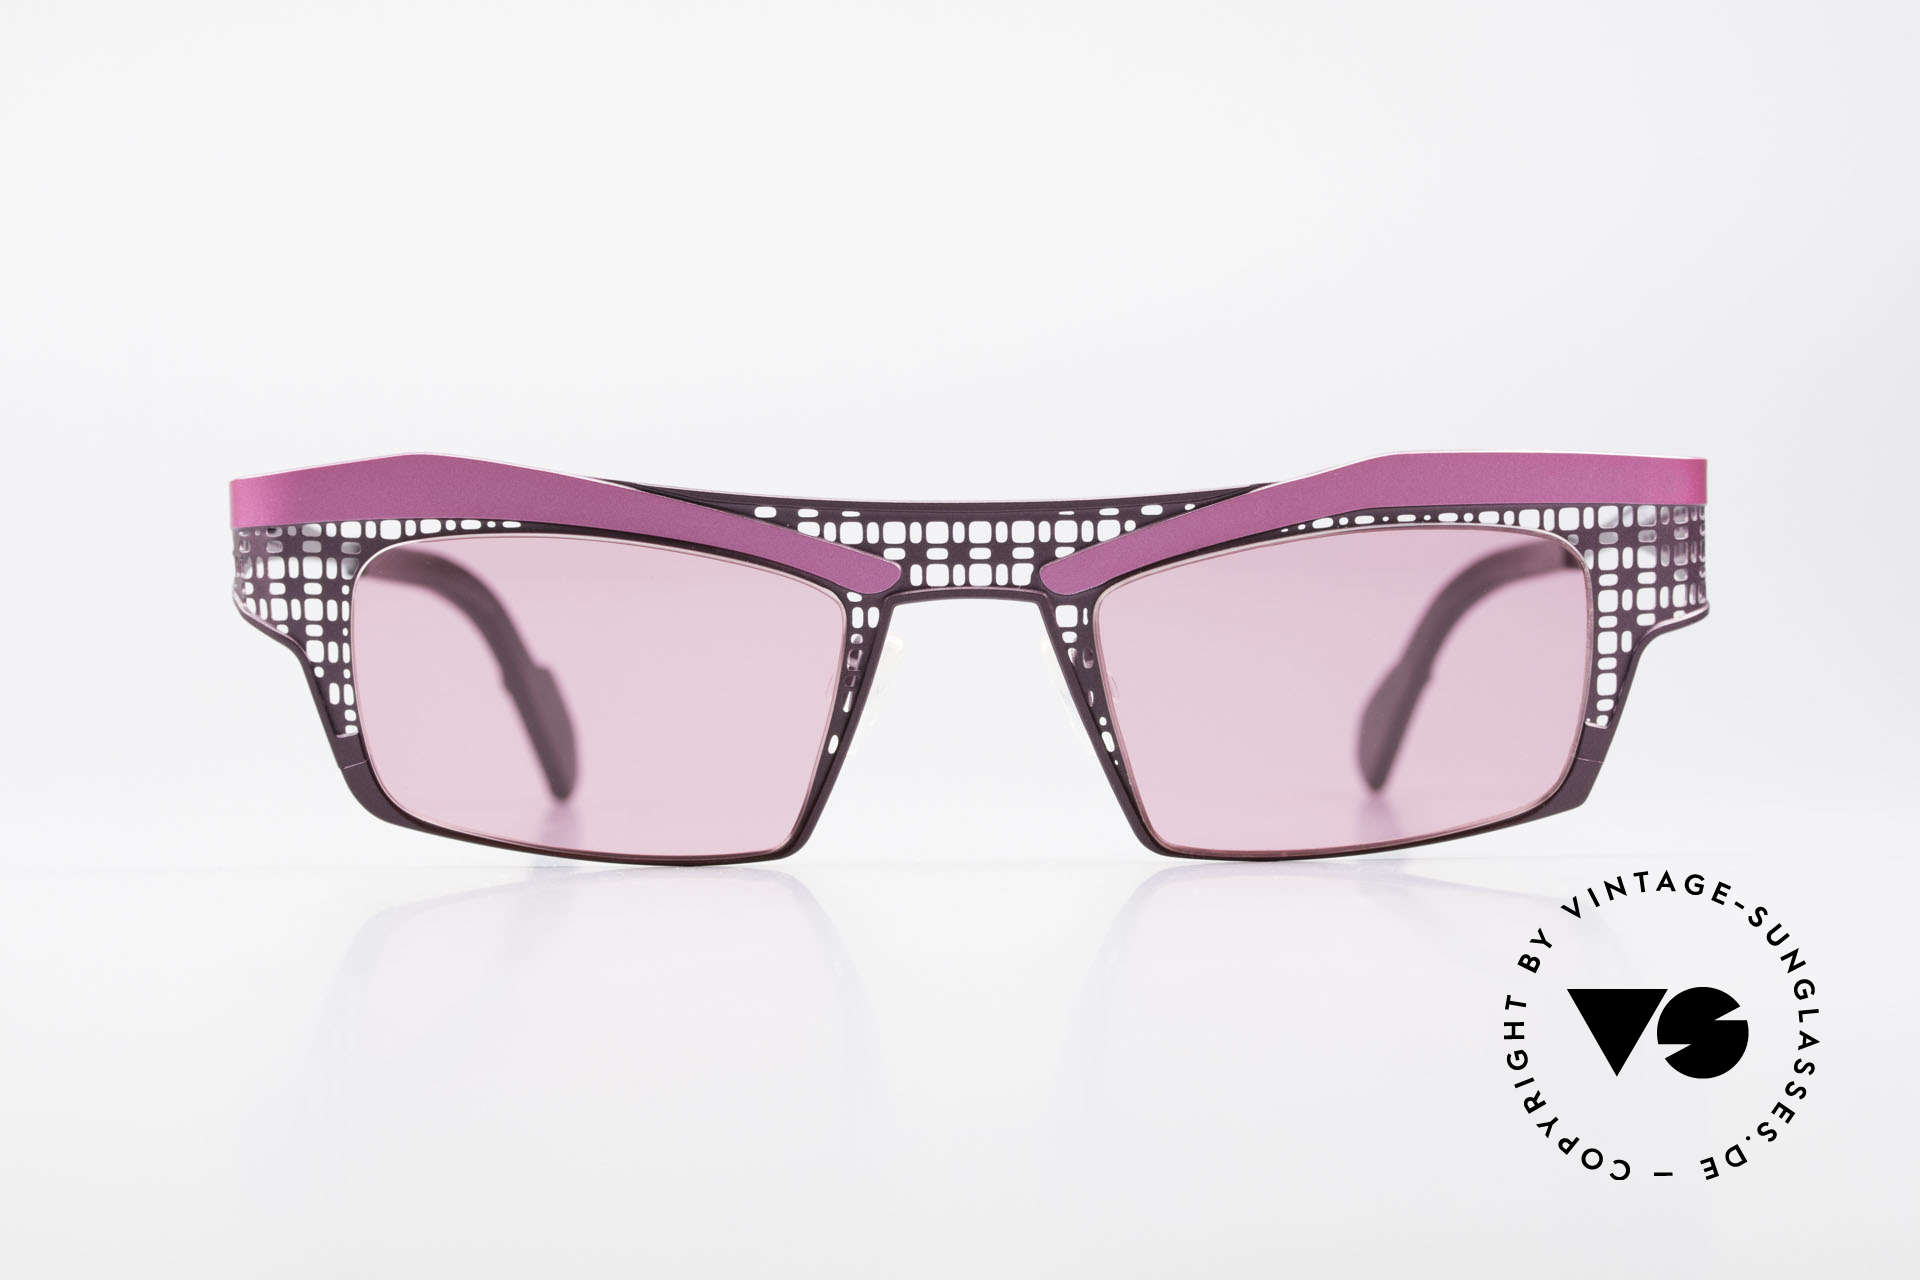 Theo Belgium Eye-Witness TA Avant-Garde Sunglasses Pink, founded in 1989 as 'opposite pole' to the 'mainstream', Made for Women